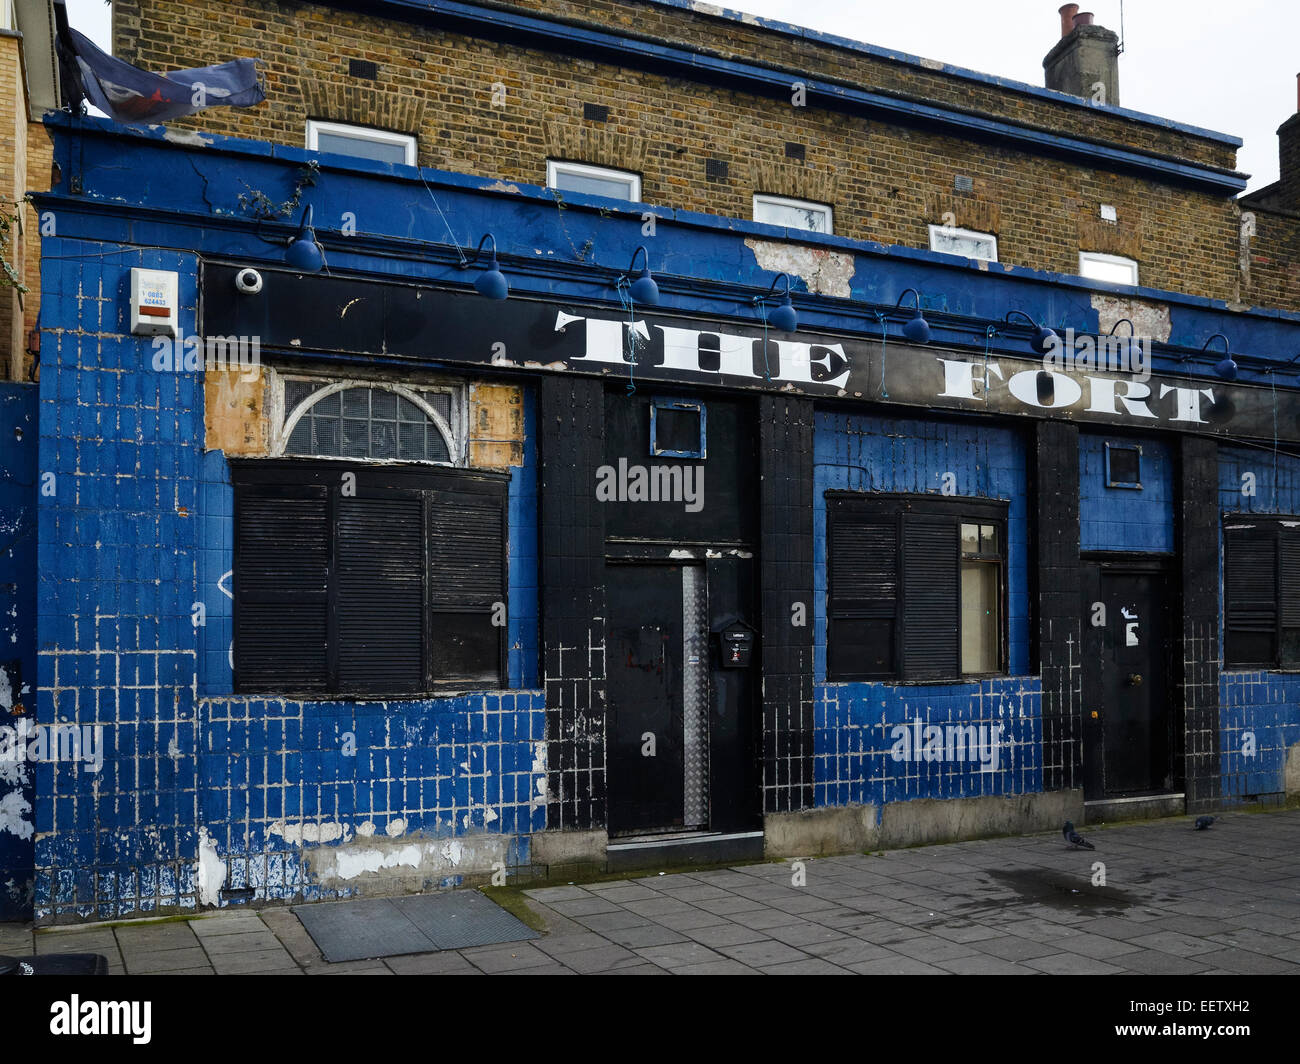 Derelict pub in South London, UK - Stock Image